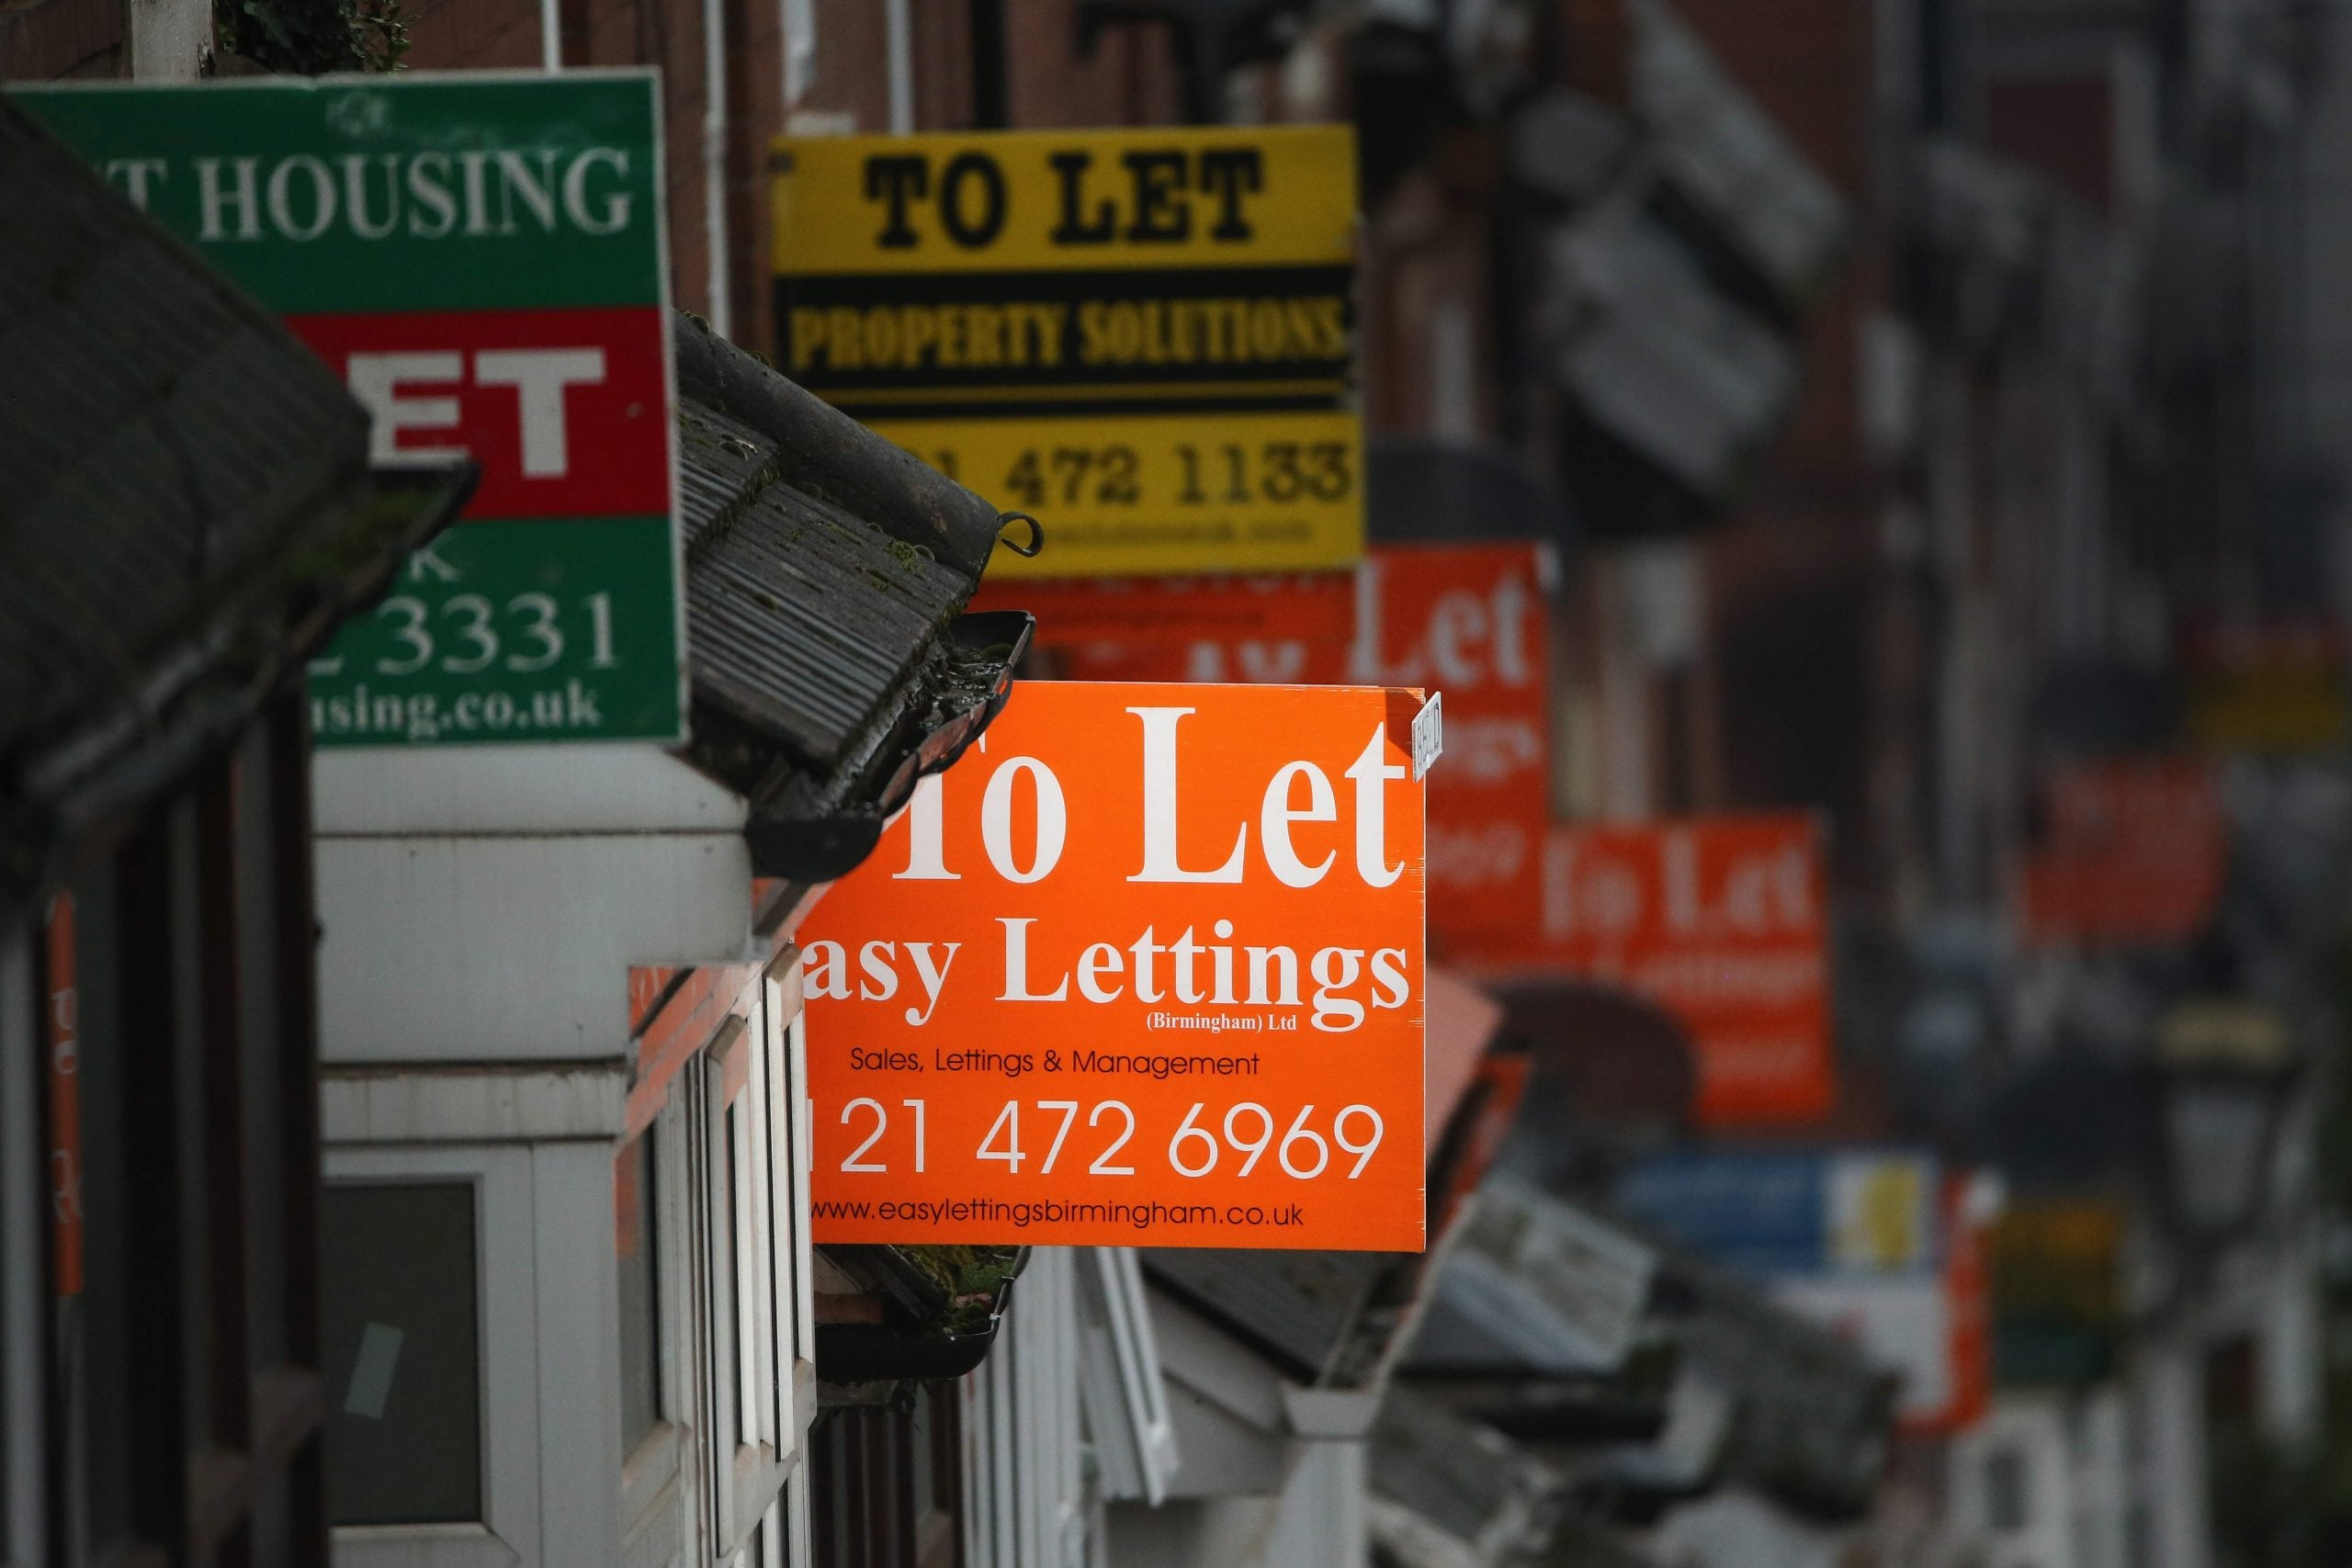 The law is finally protecting renters from rogue landlords - now enforce it